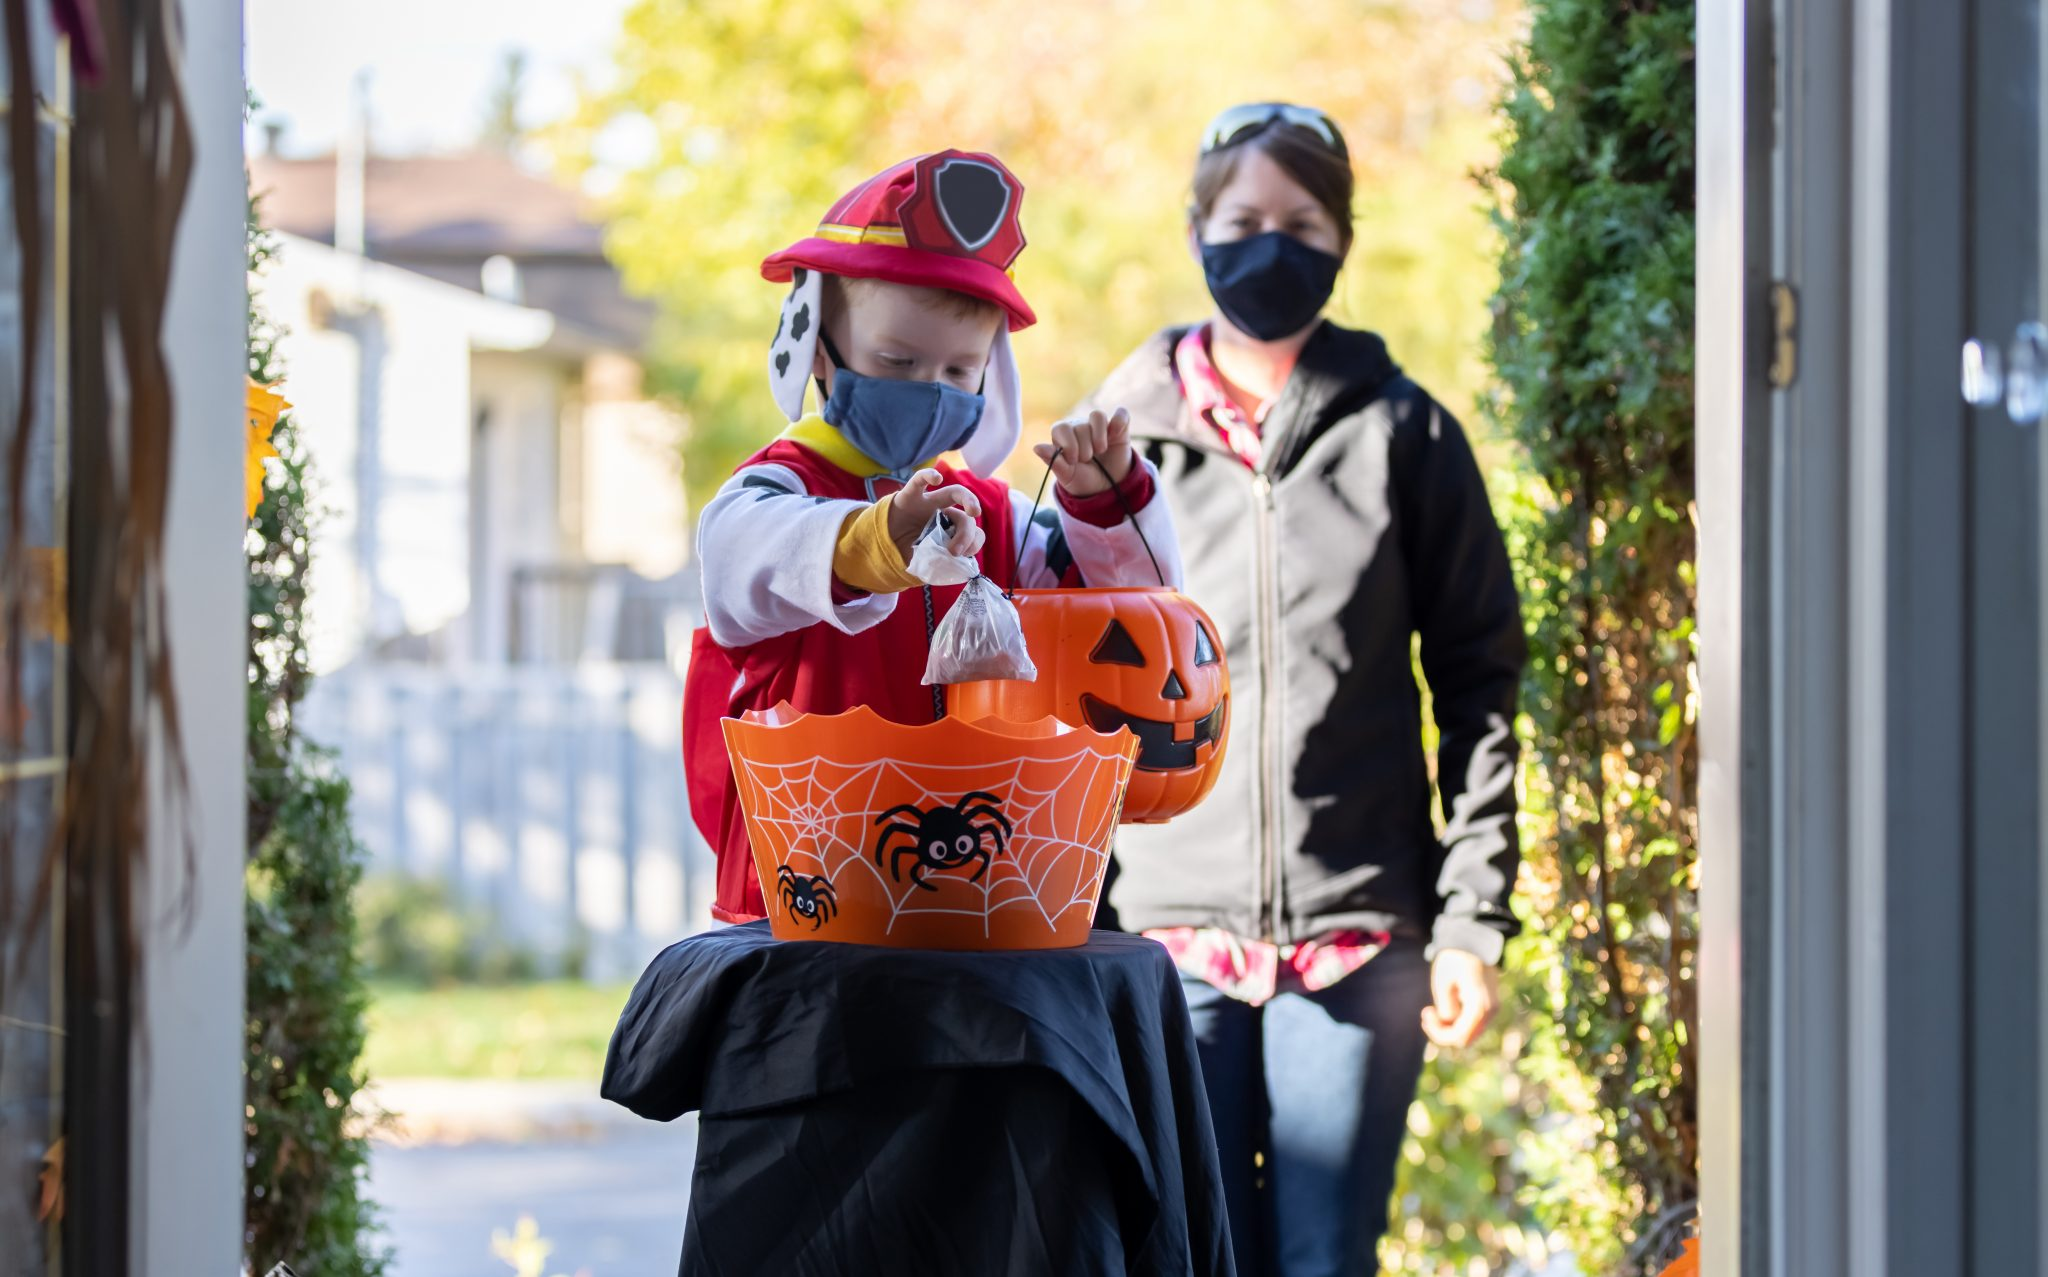 New-Normal Halloween Festivities for Work and Home